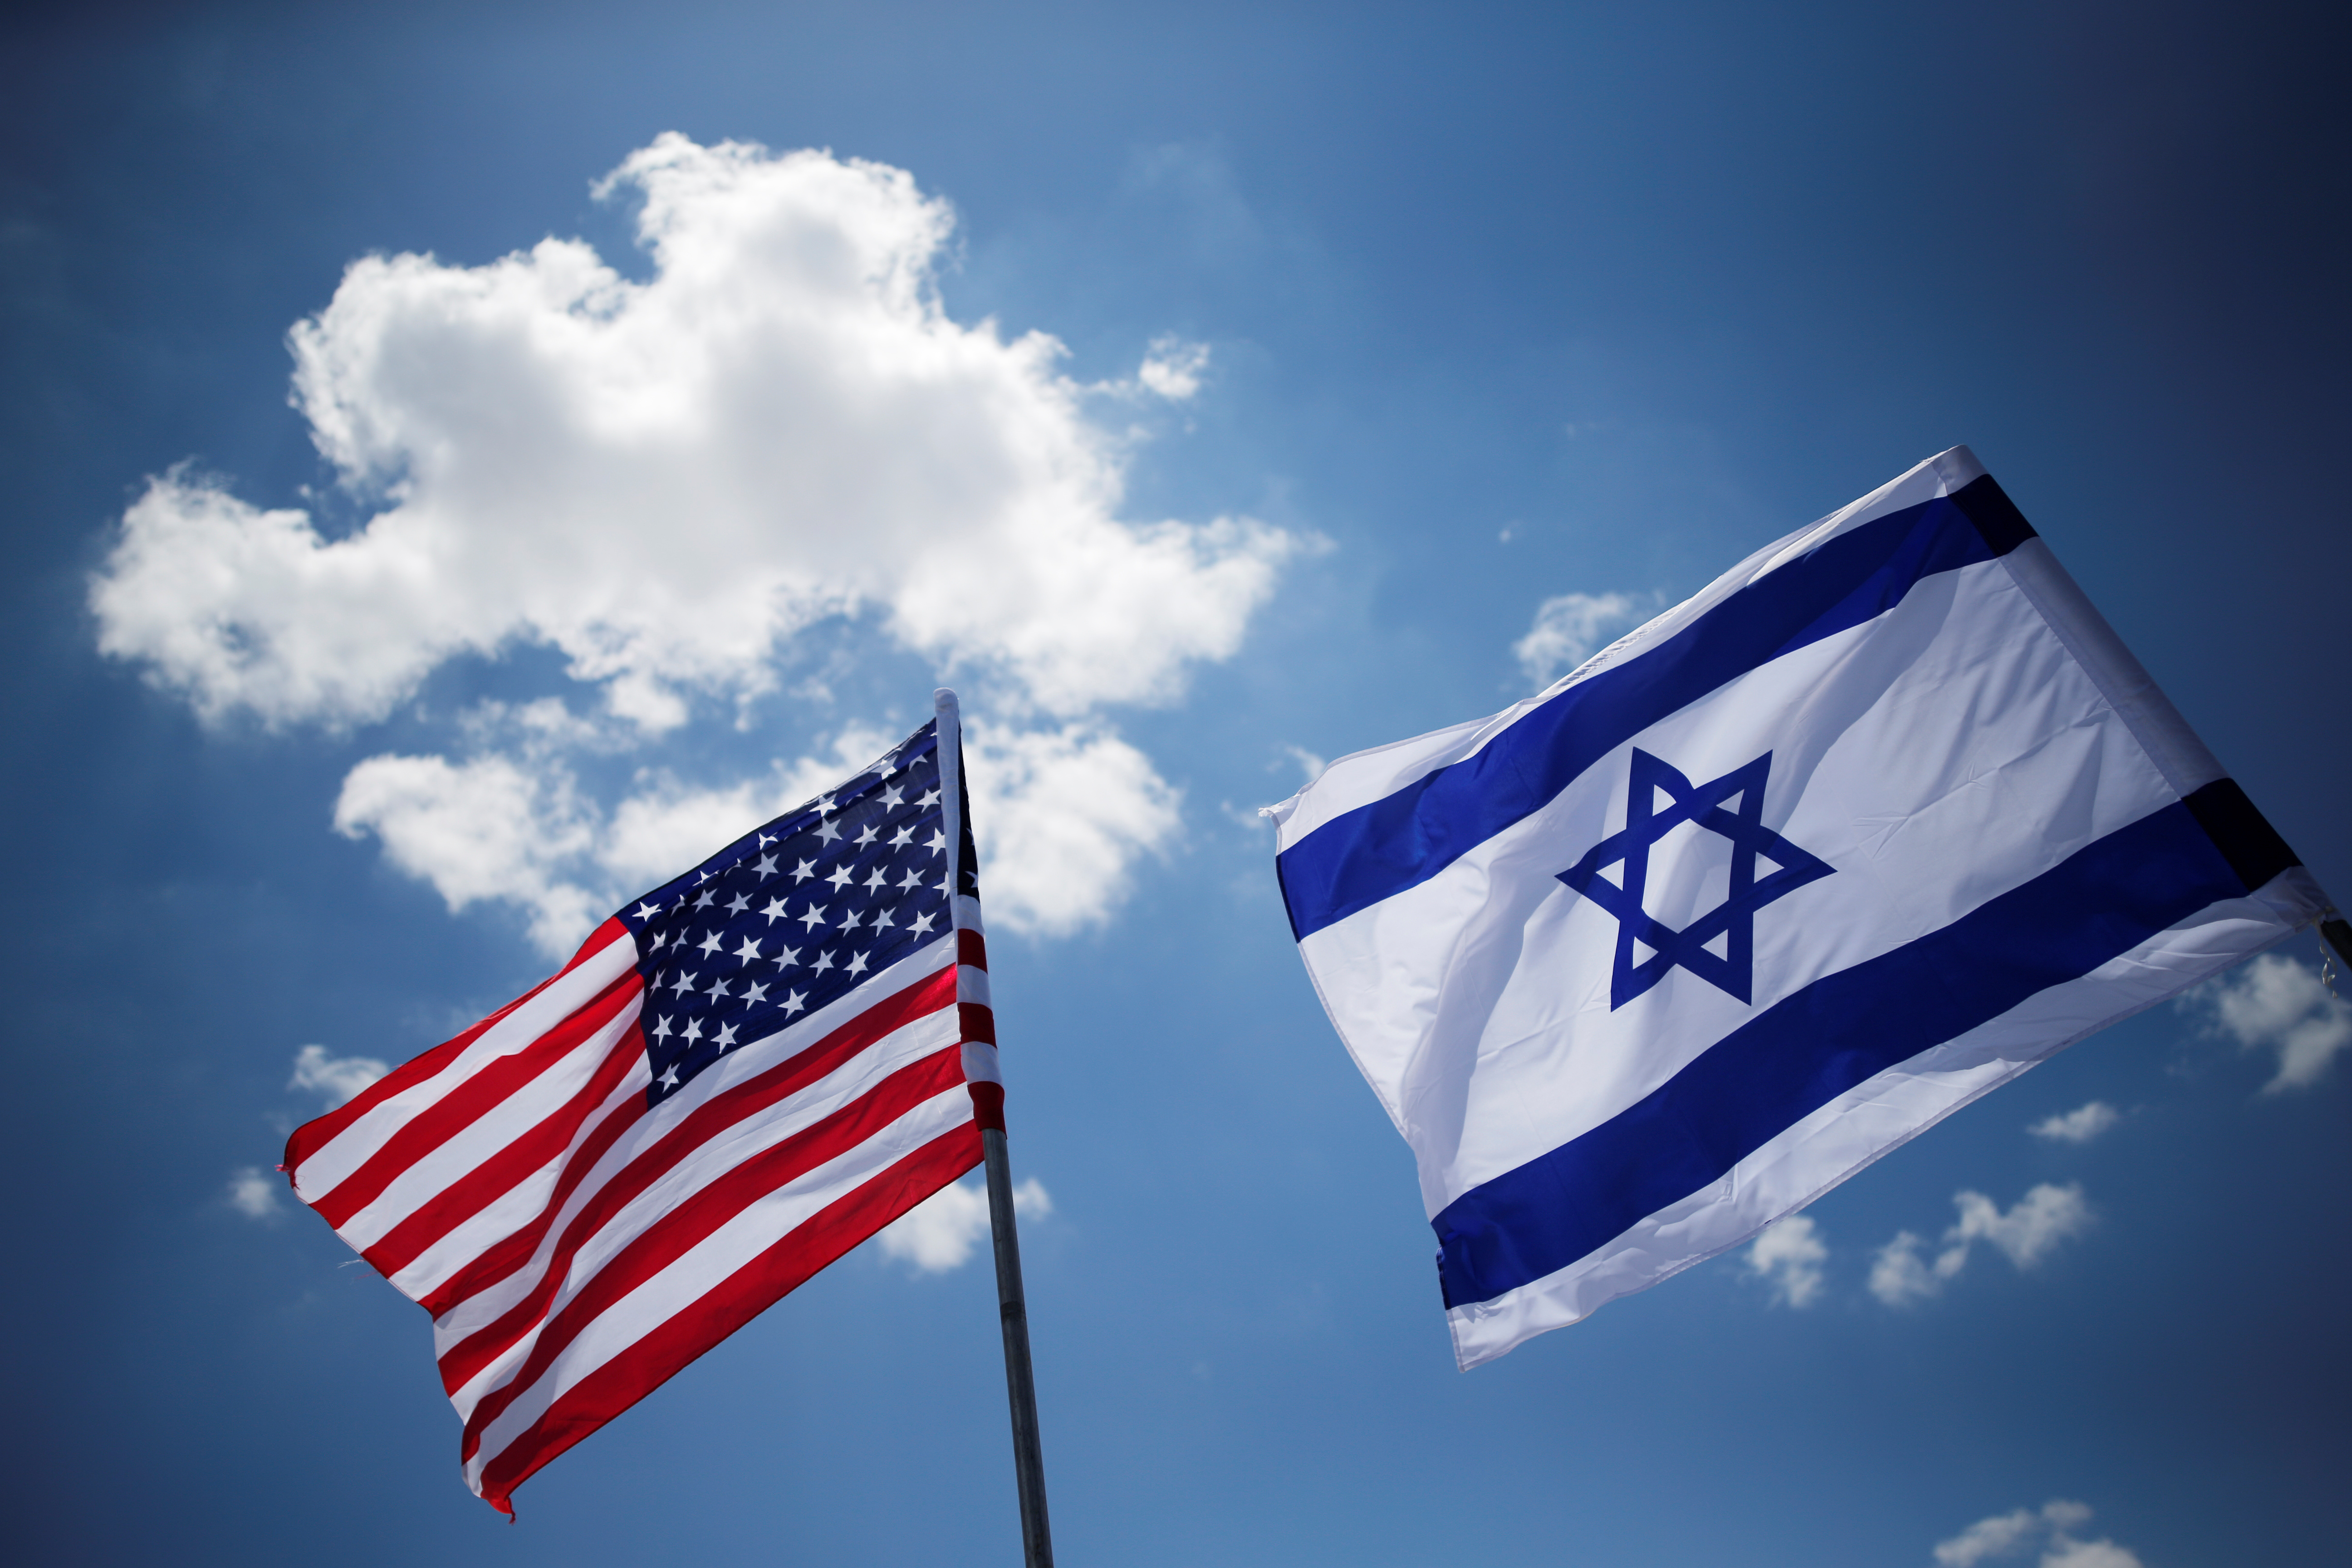 Americans are increasingly critical of Israel